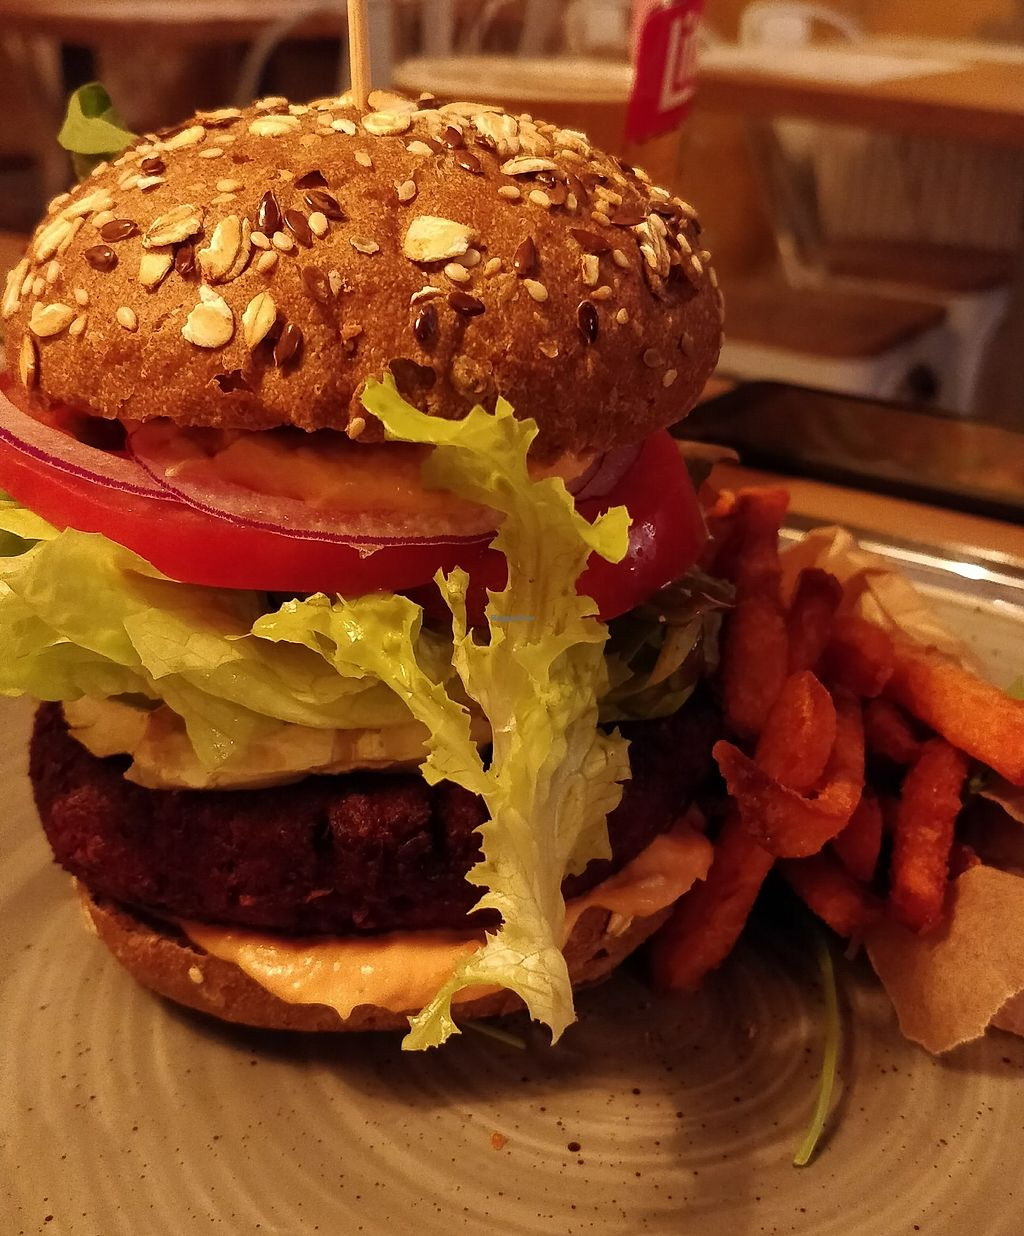 """Photo of Veganic  by <a href=""""/members/profile/ashyda"""">ashyda</a> <br/>Vegan burger <br/> December 6, 2017  - <a href='/contact/abuse/image/76428/332927'>Report</a>"""